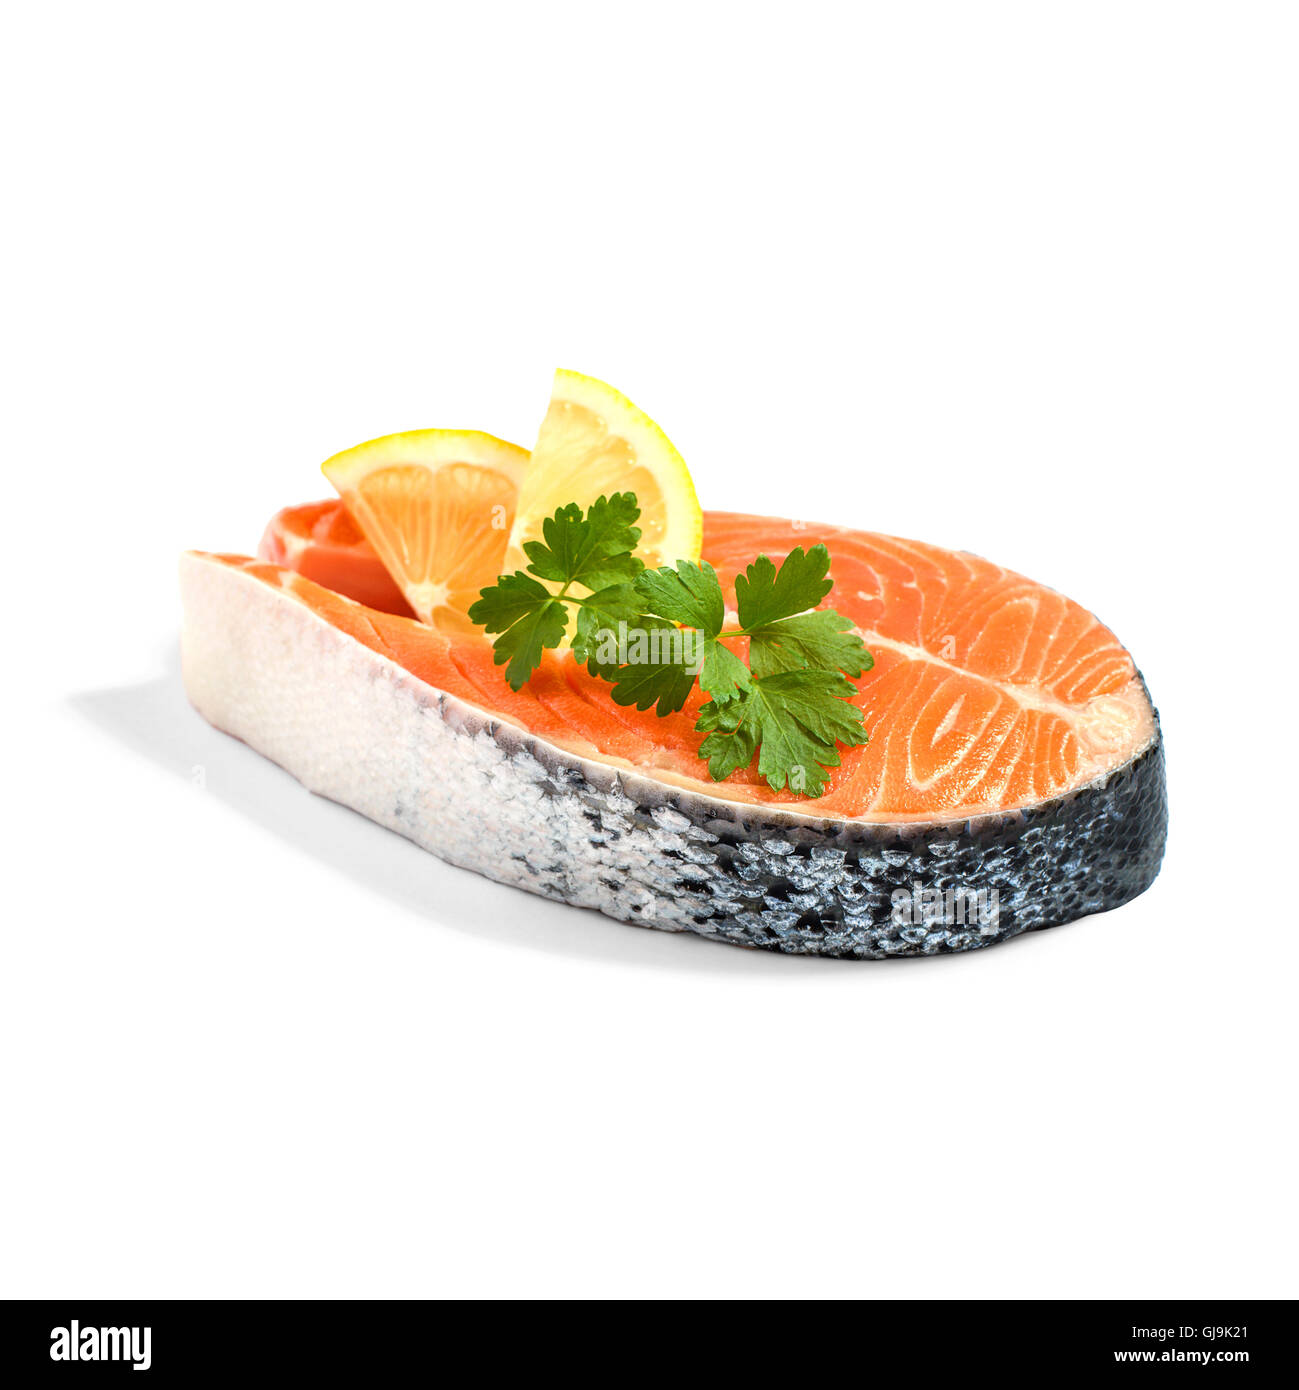 Salmon steak with lemon slice and parsley, isoliert - Stock Image